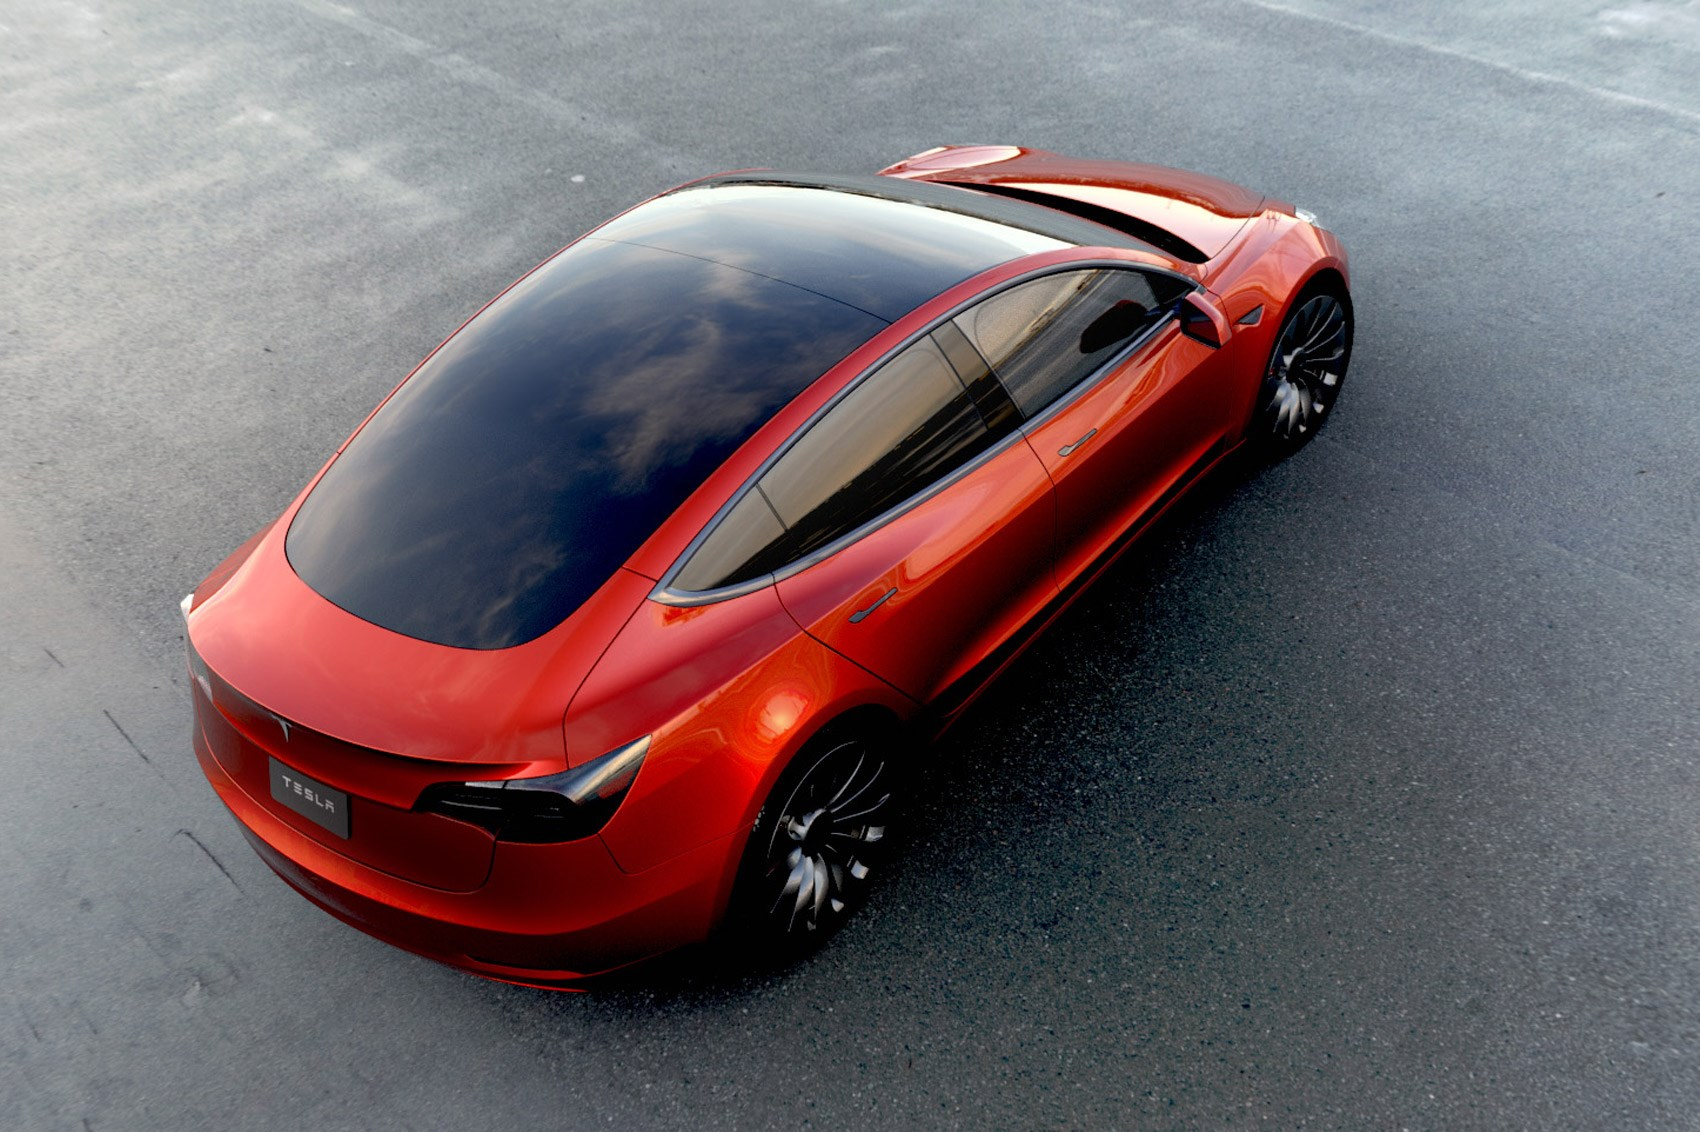 tesla model 3 news the most affordable tesla yet in pictures by car